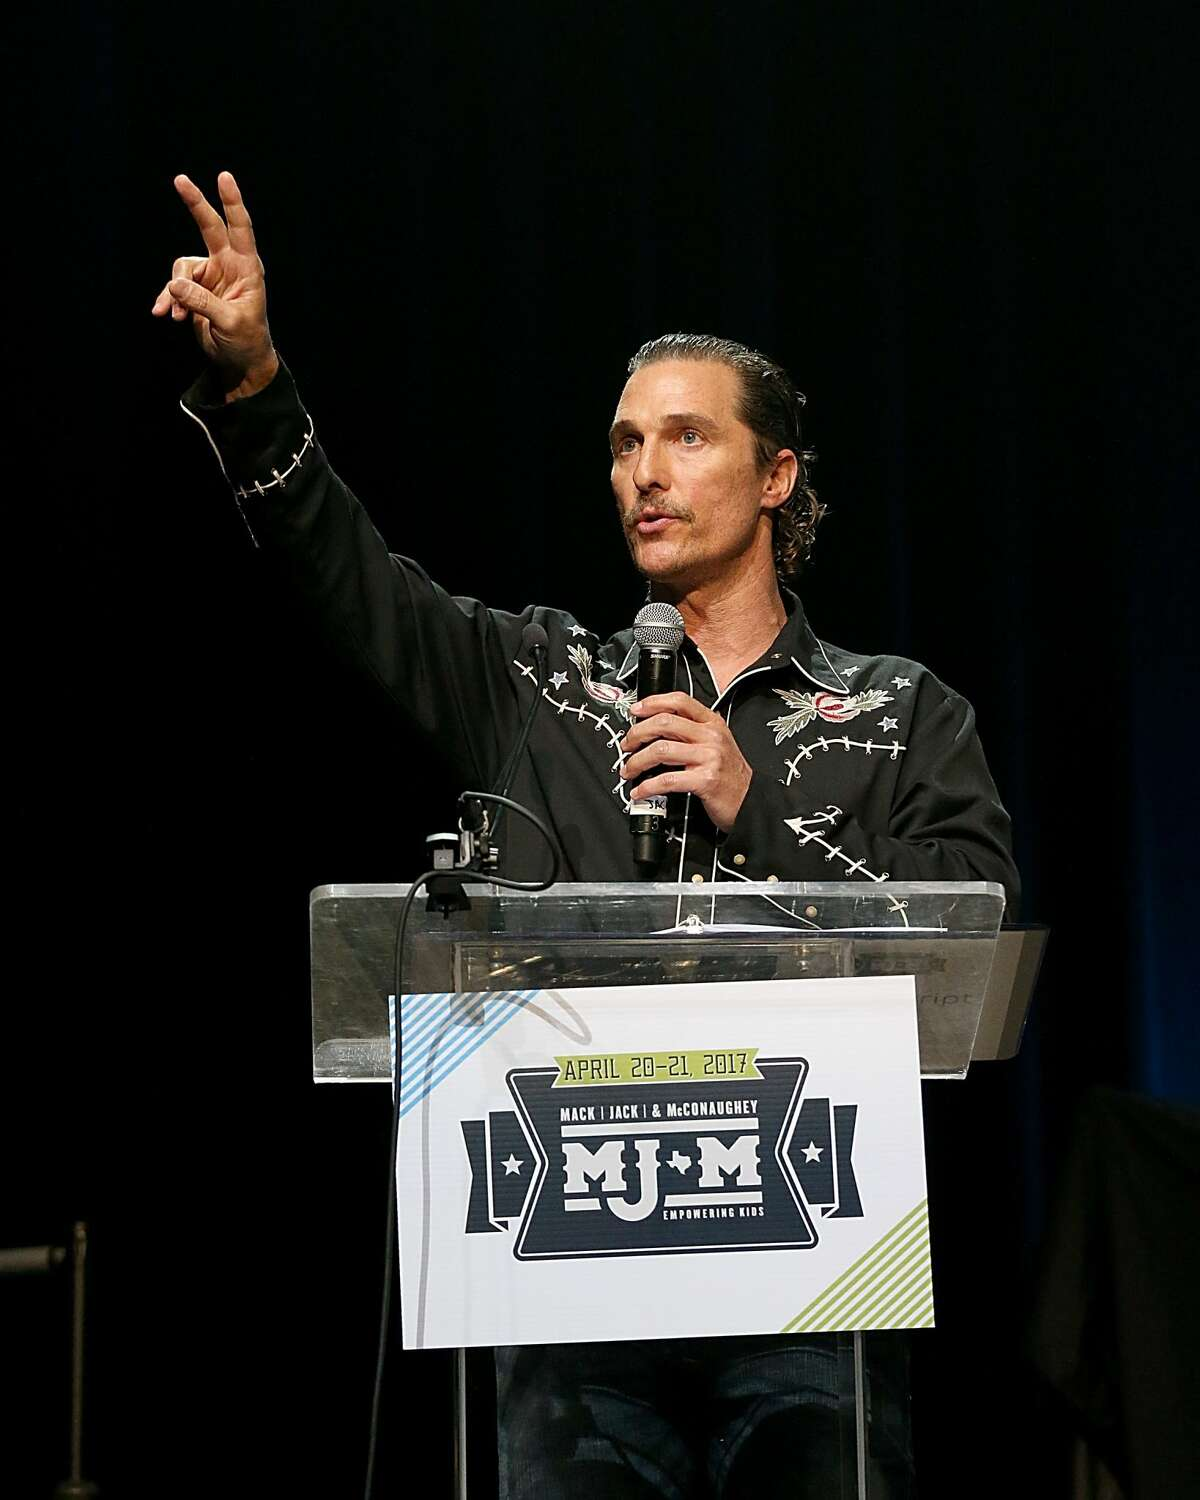 Matthew McConaughey speaks onstage during the Mack, Jack & McConaughey Gala benefit at ACL-Live on April 20, 2017 in Austin, Texas.